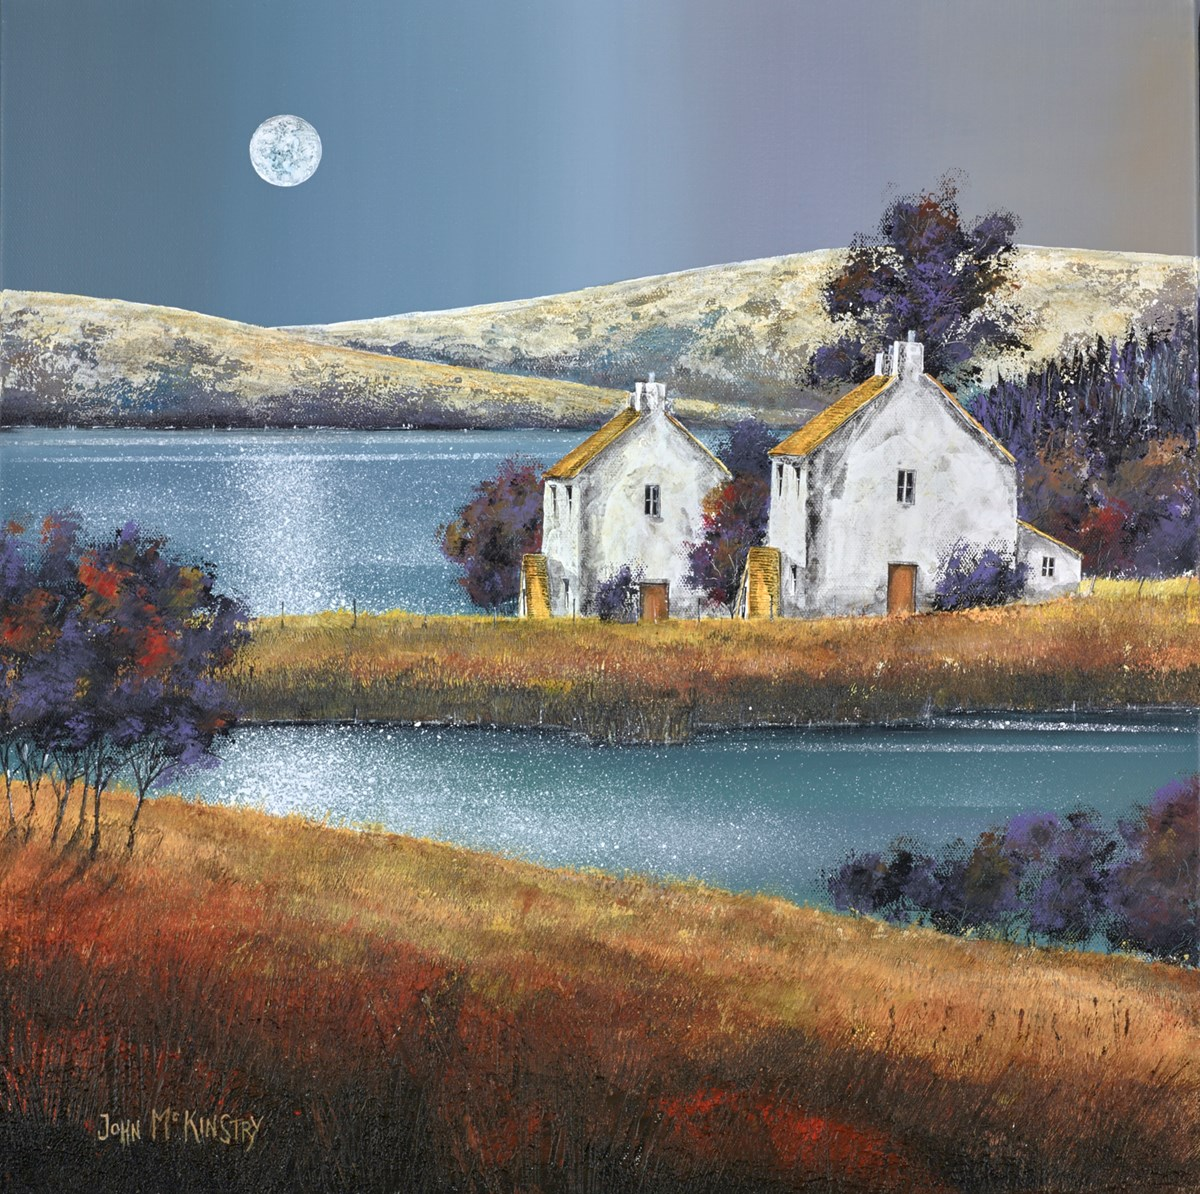 Moon Shine by john mckinstry -  sized 20x20 inches. Available from Whitewall Galleries